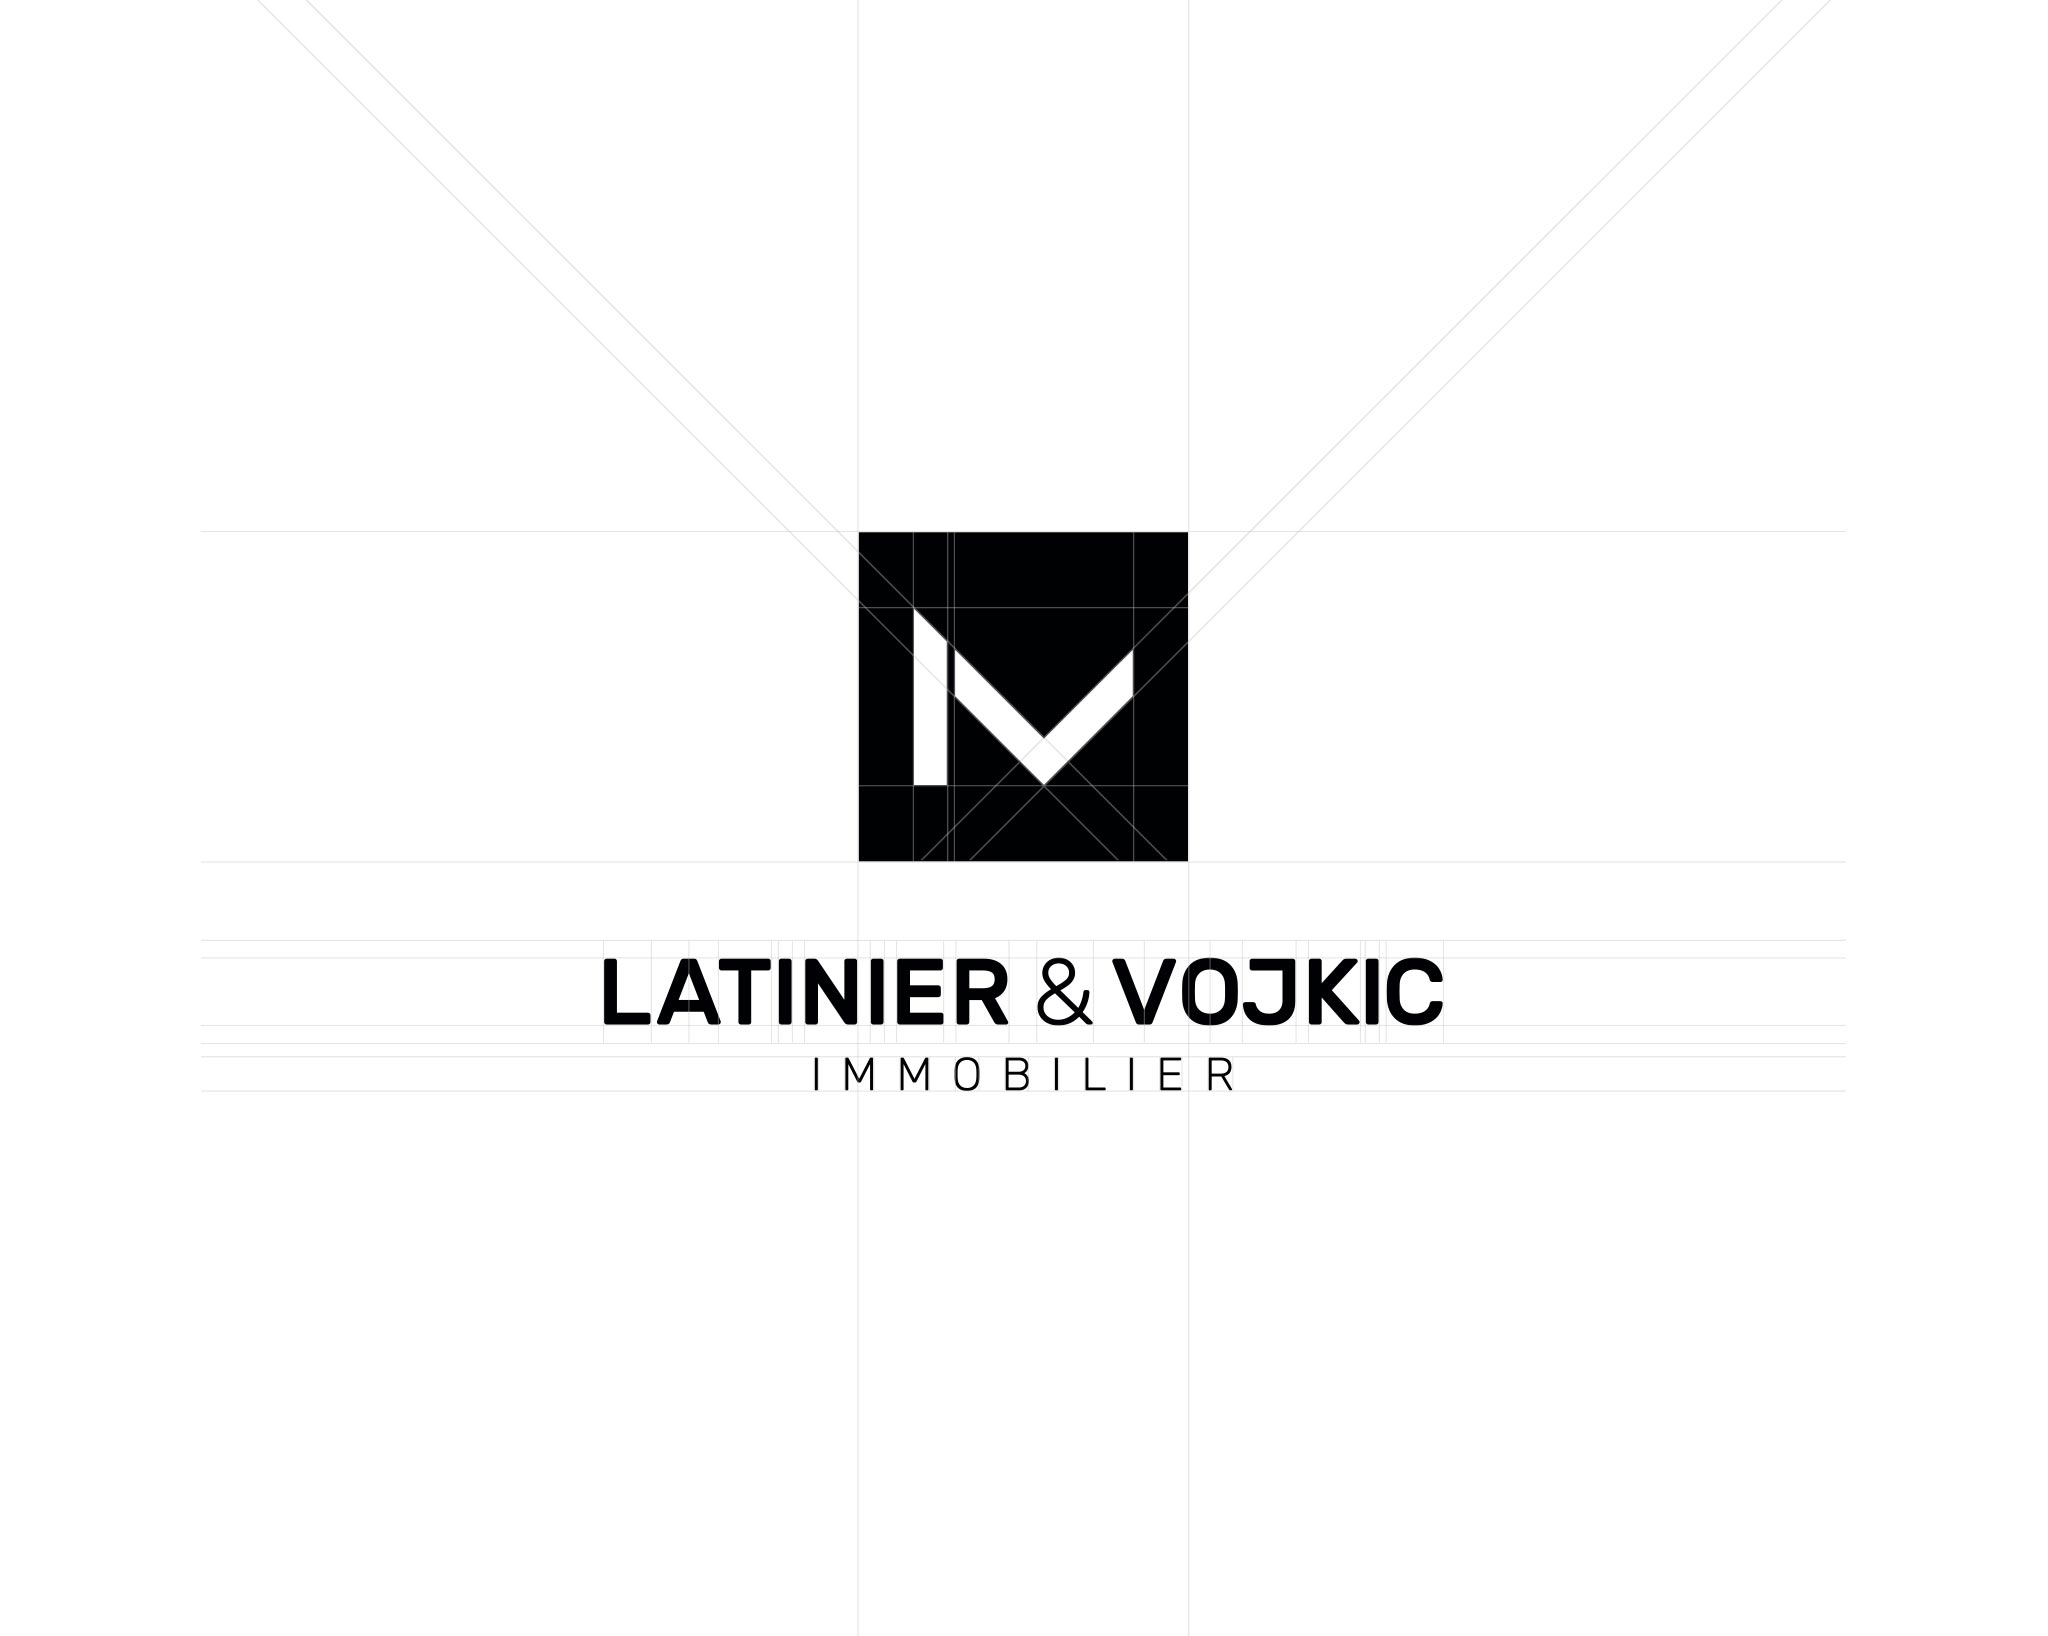 Construction logo Latinier & Vojkic Immobilier